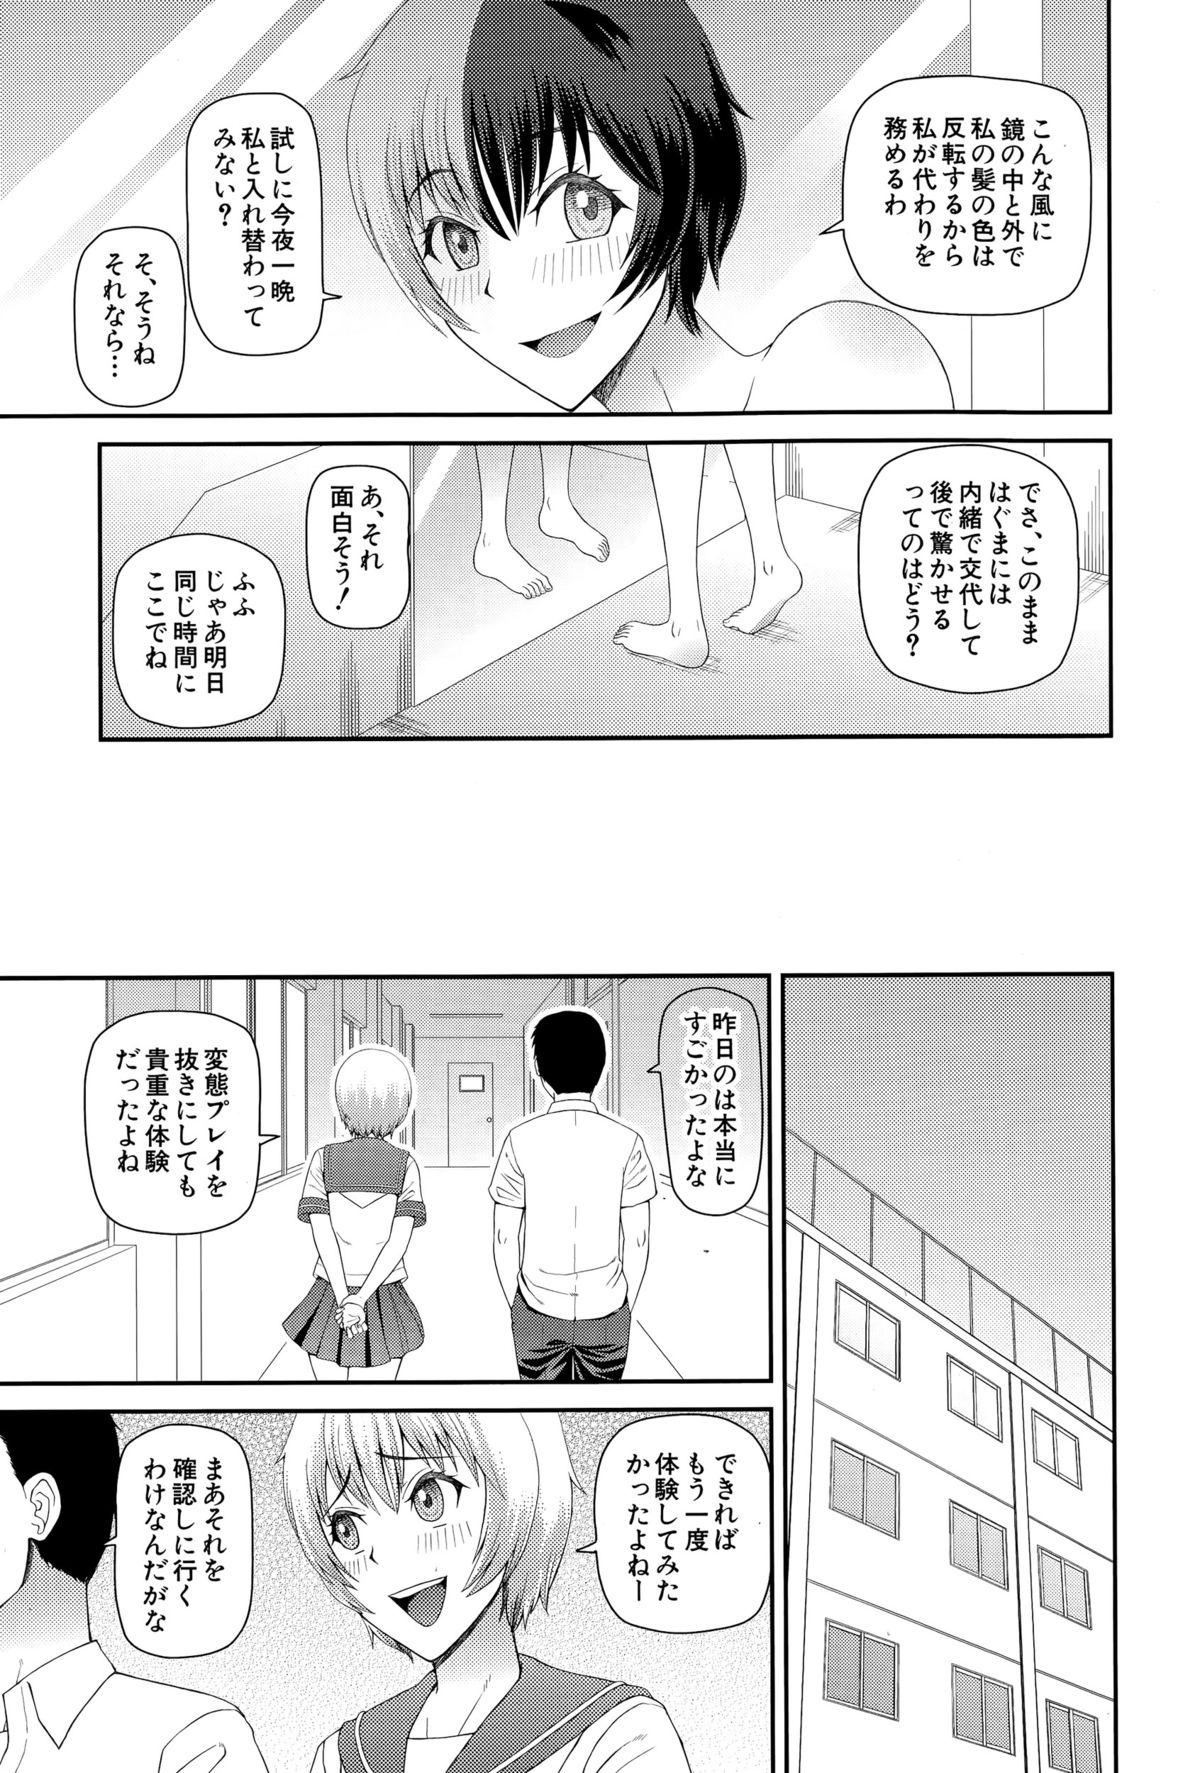 BUSTER COMIC 2015-07 236